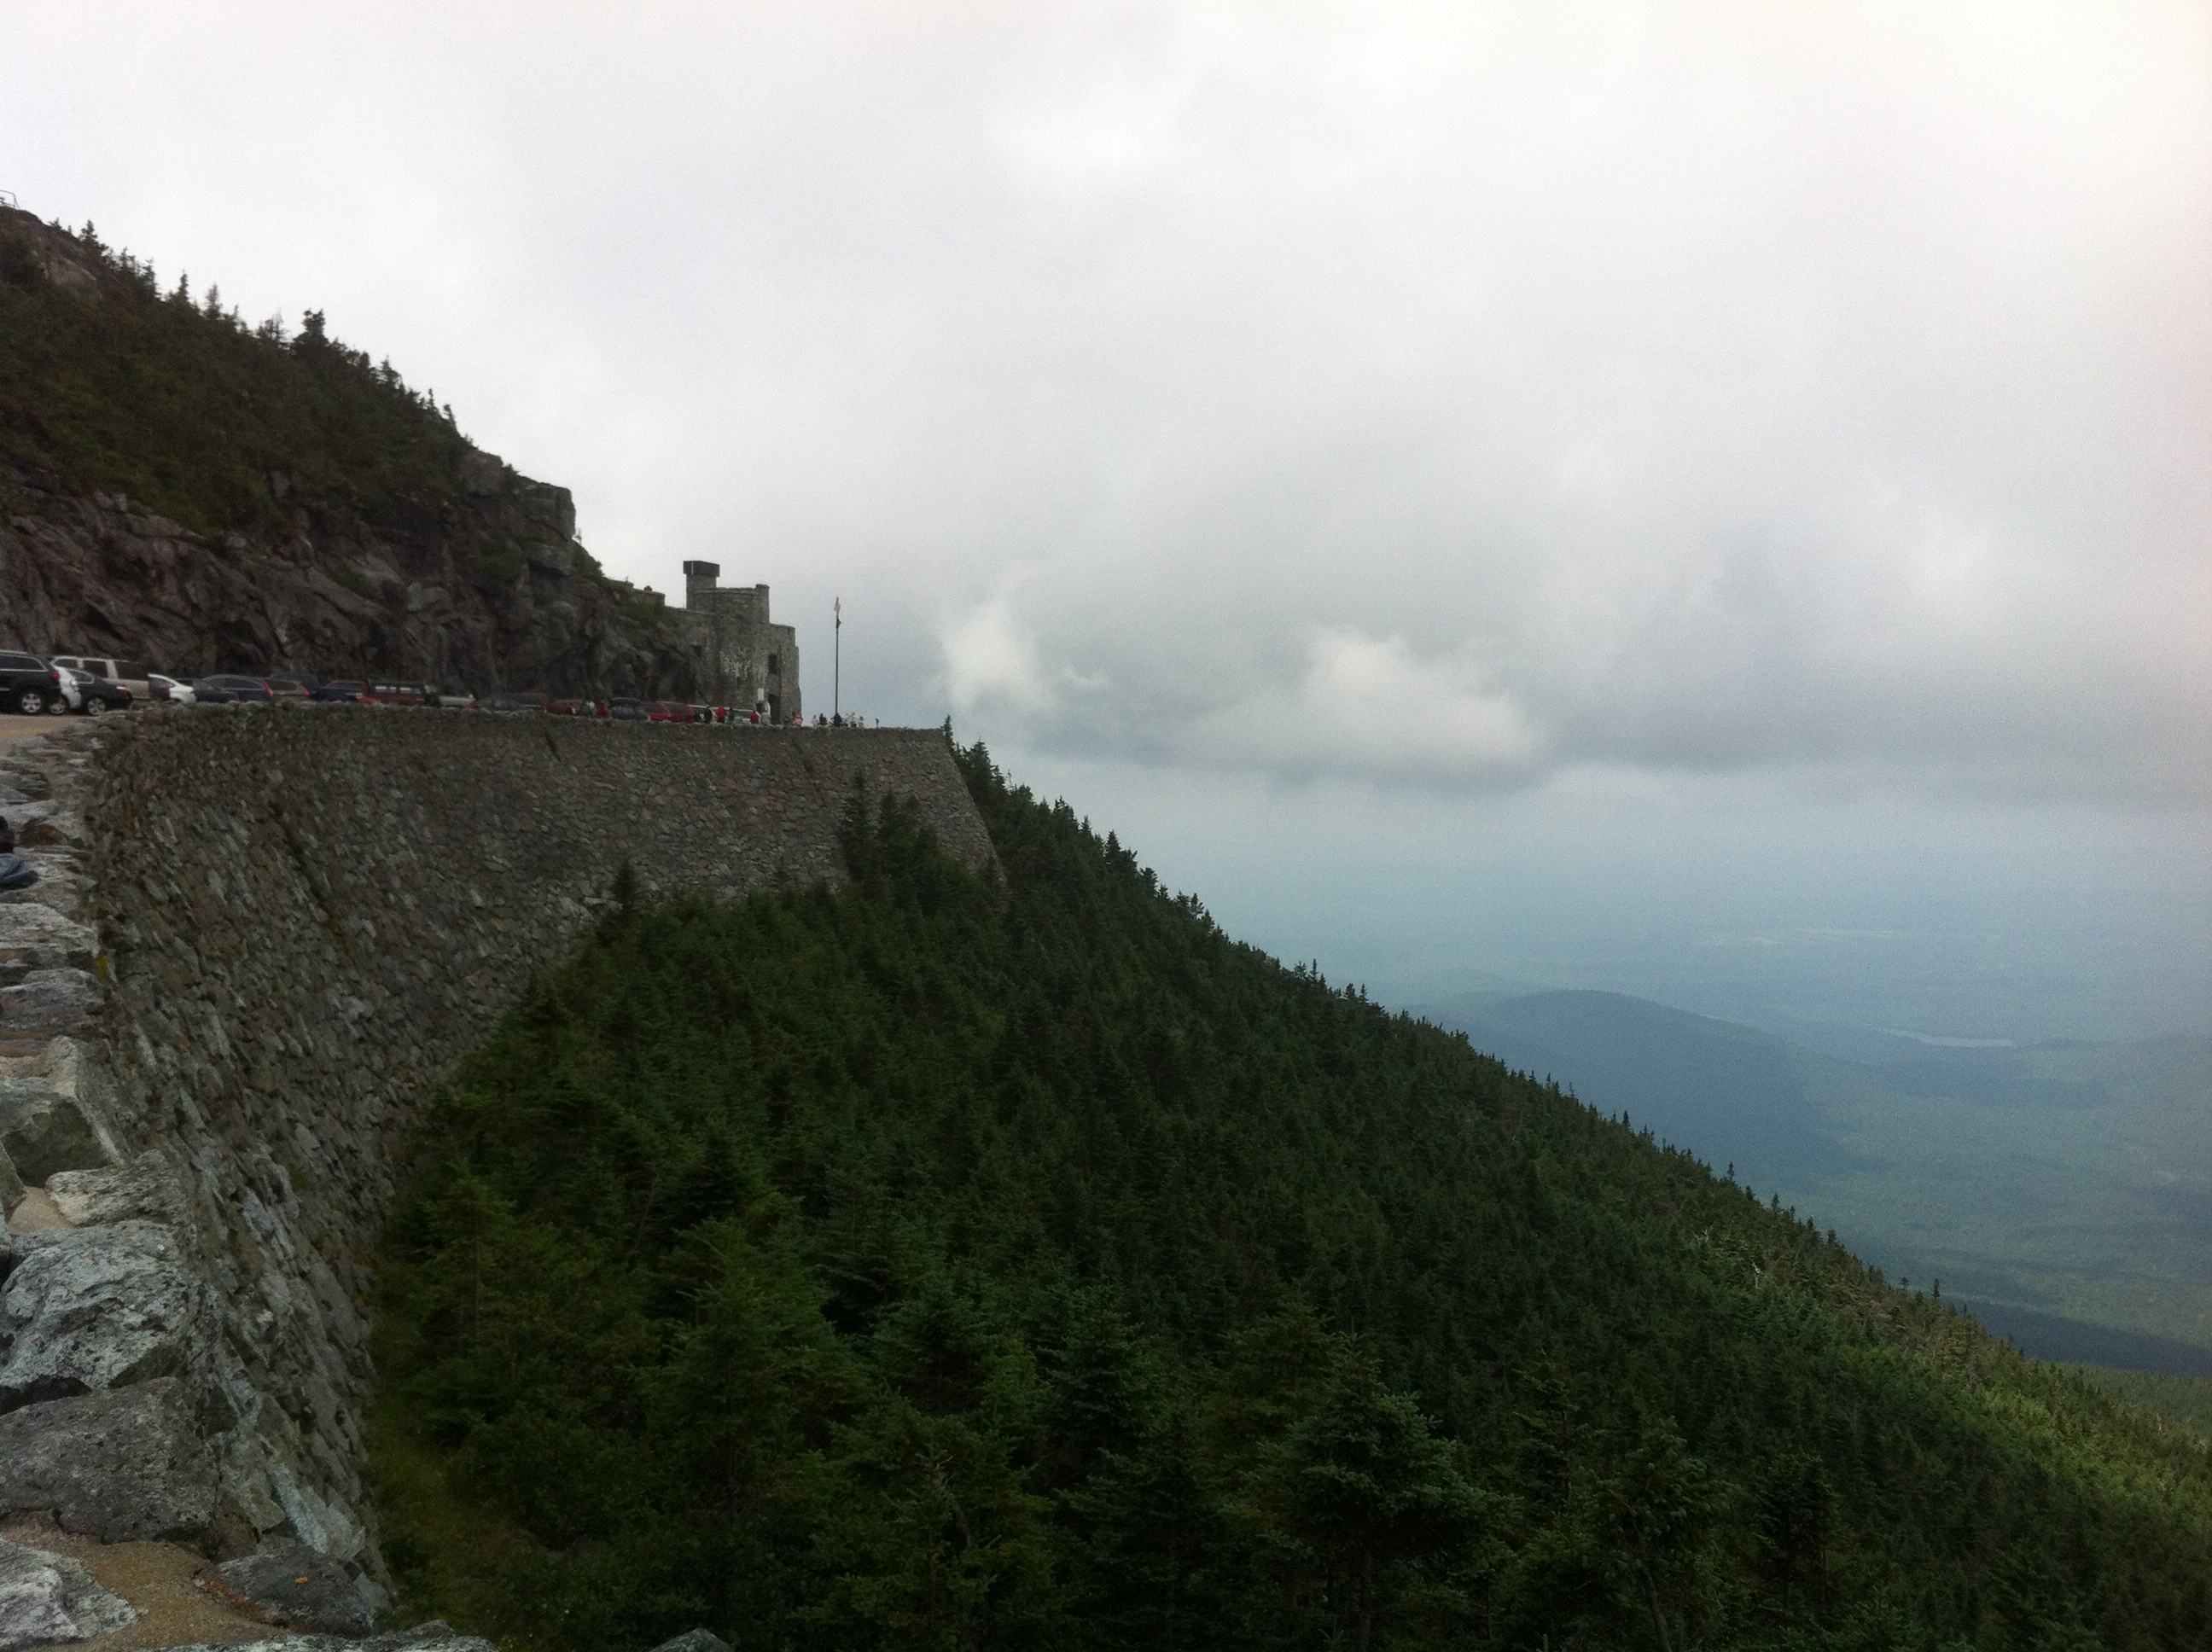 Approaching the castle atop Whiteface Mountain.